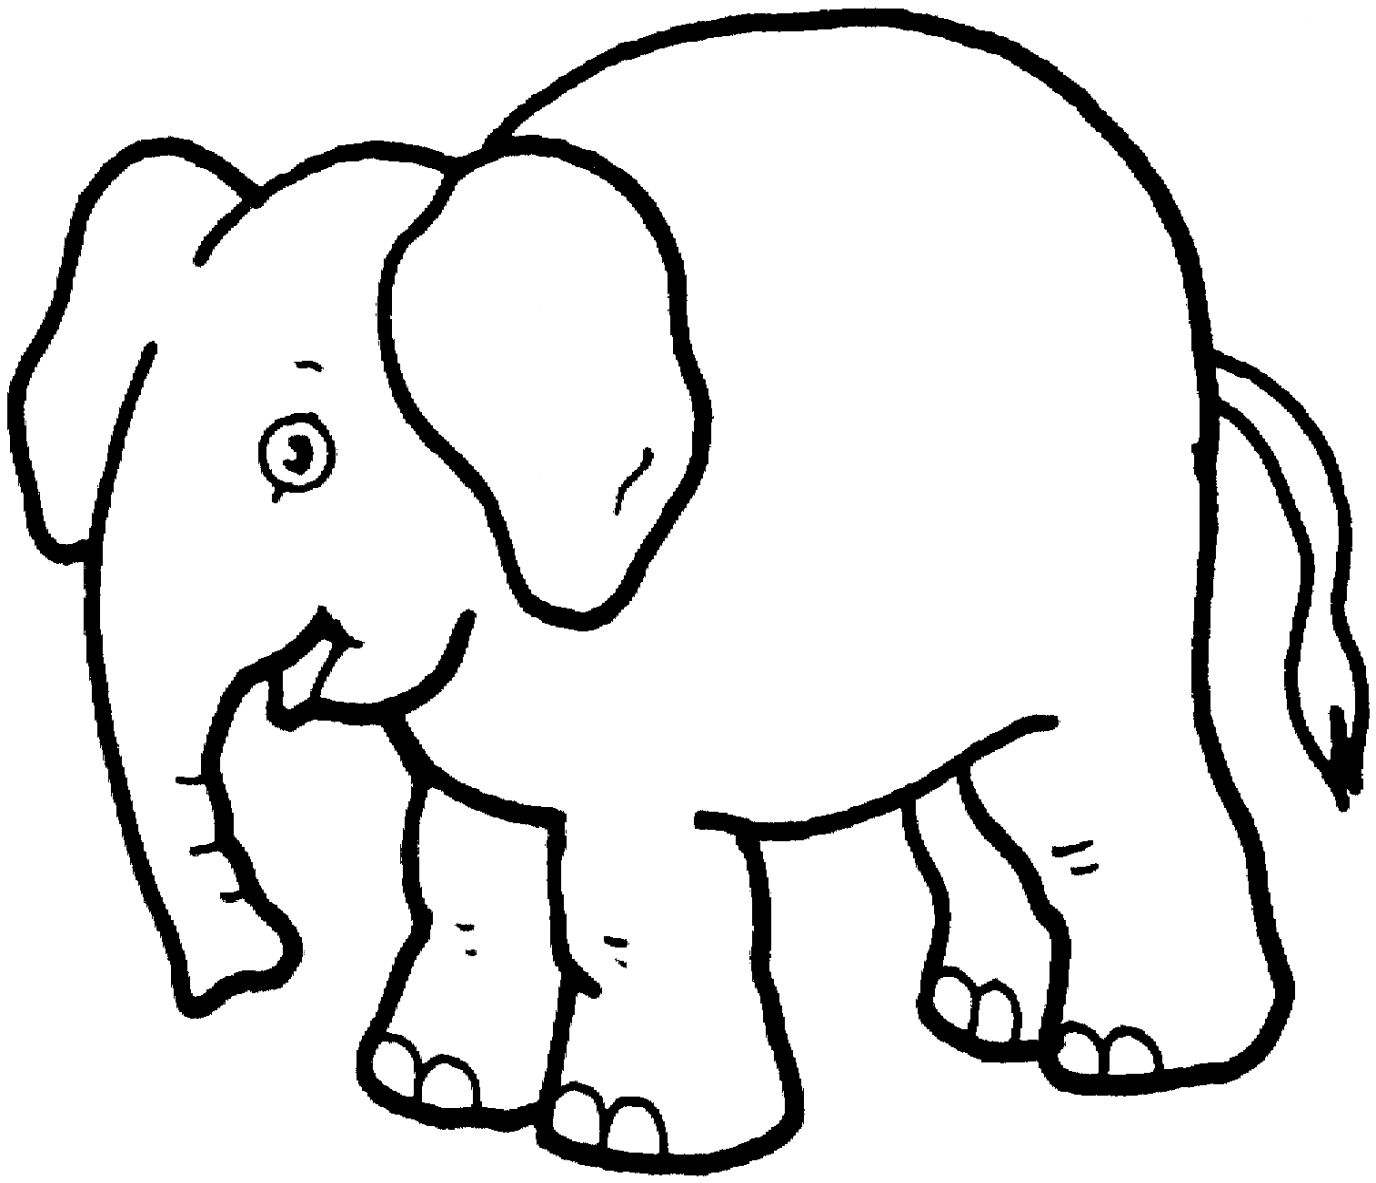 Elephant Clipart Black And White.